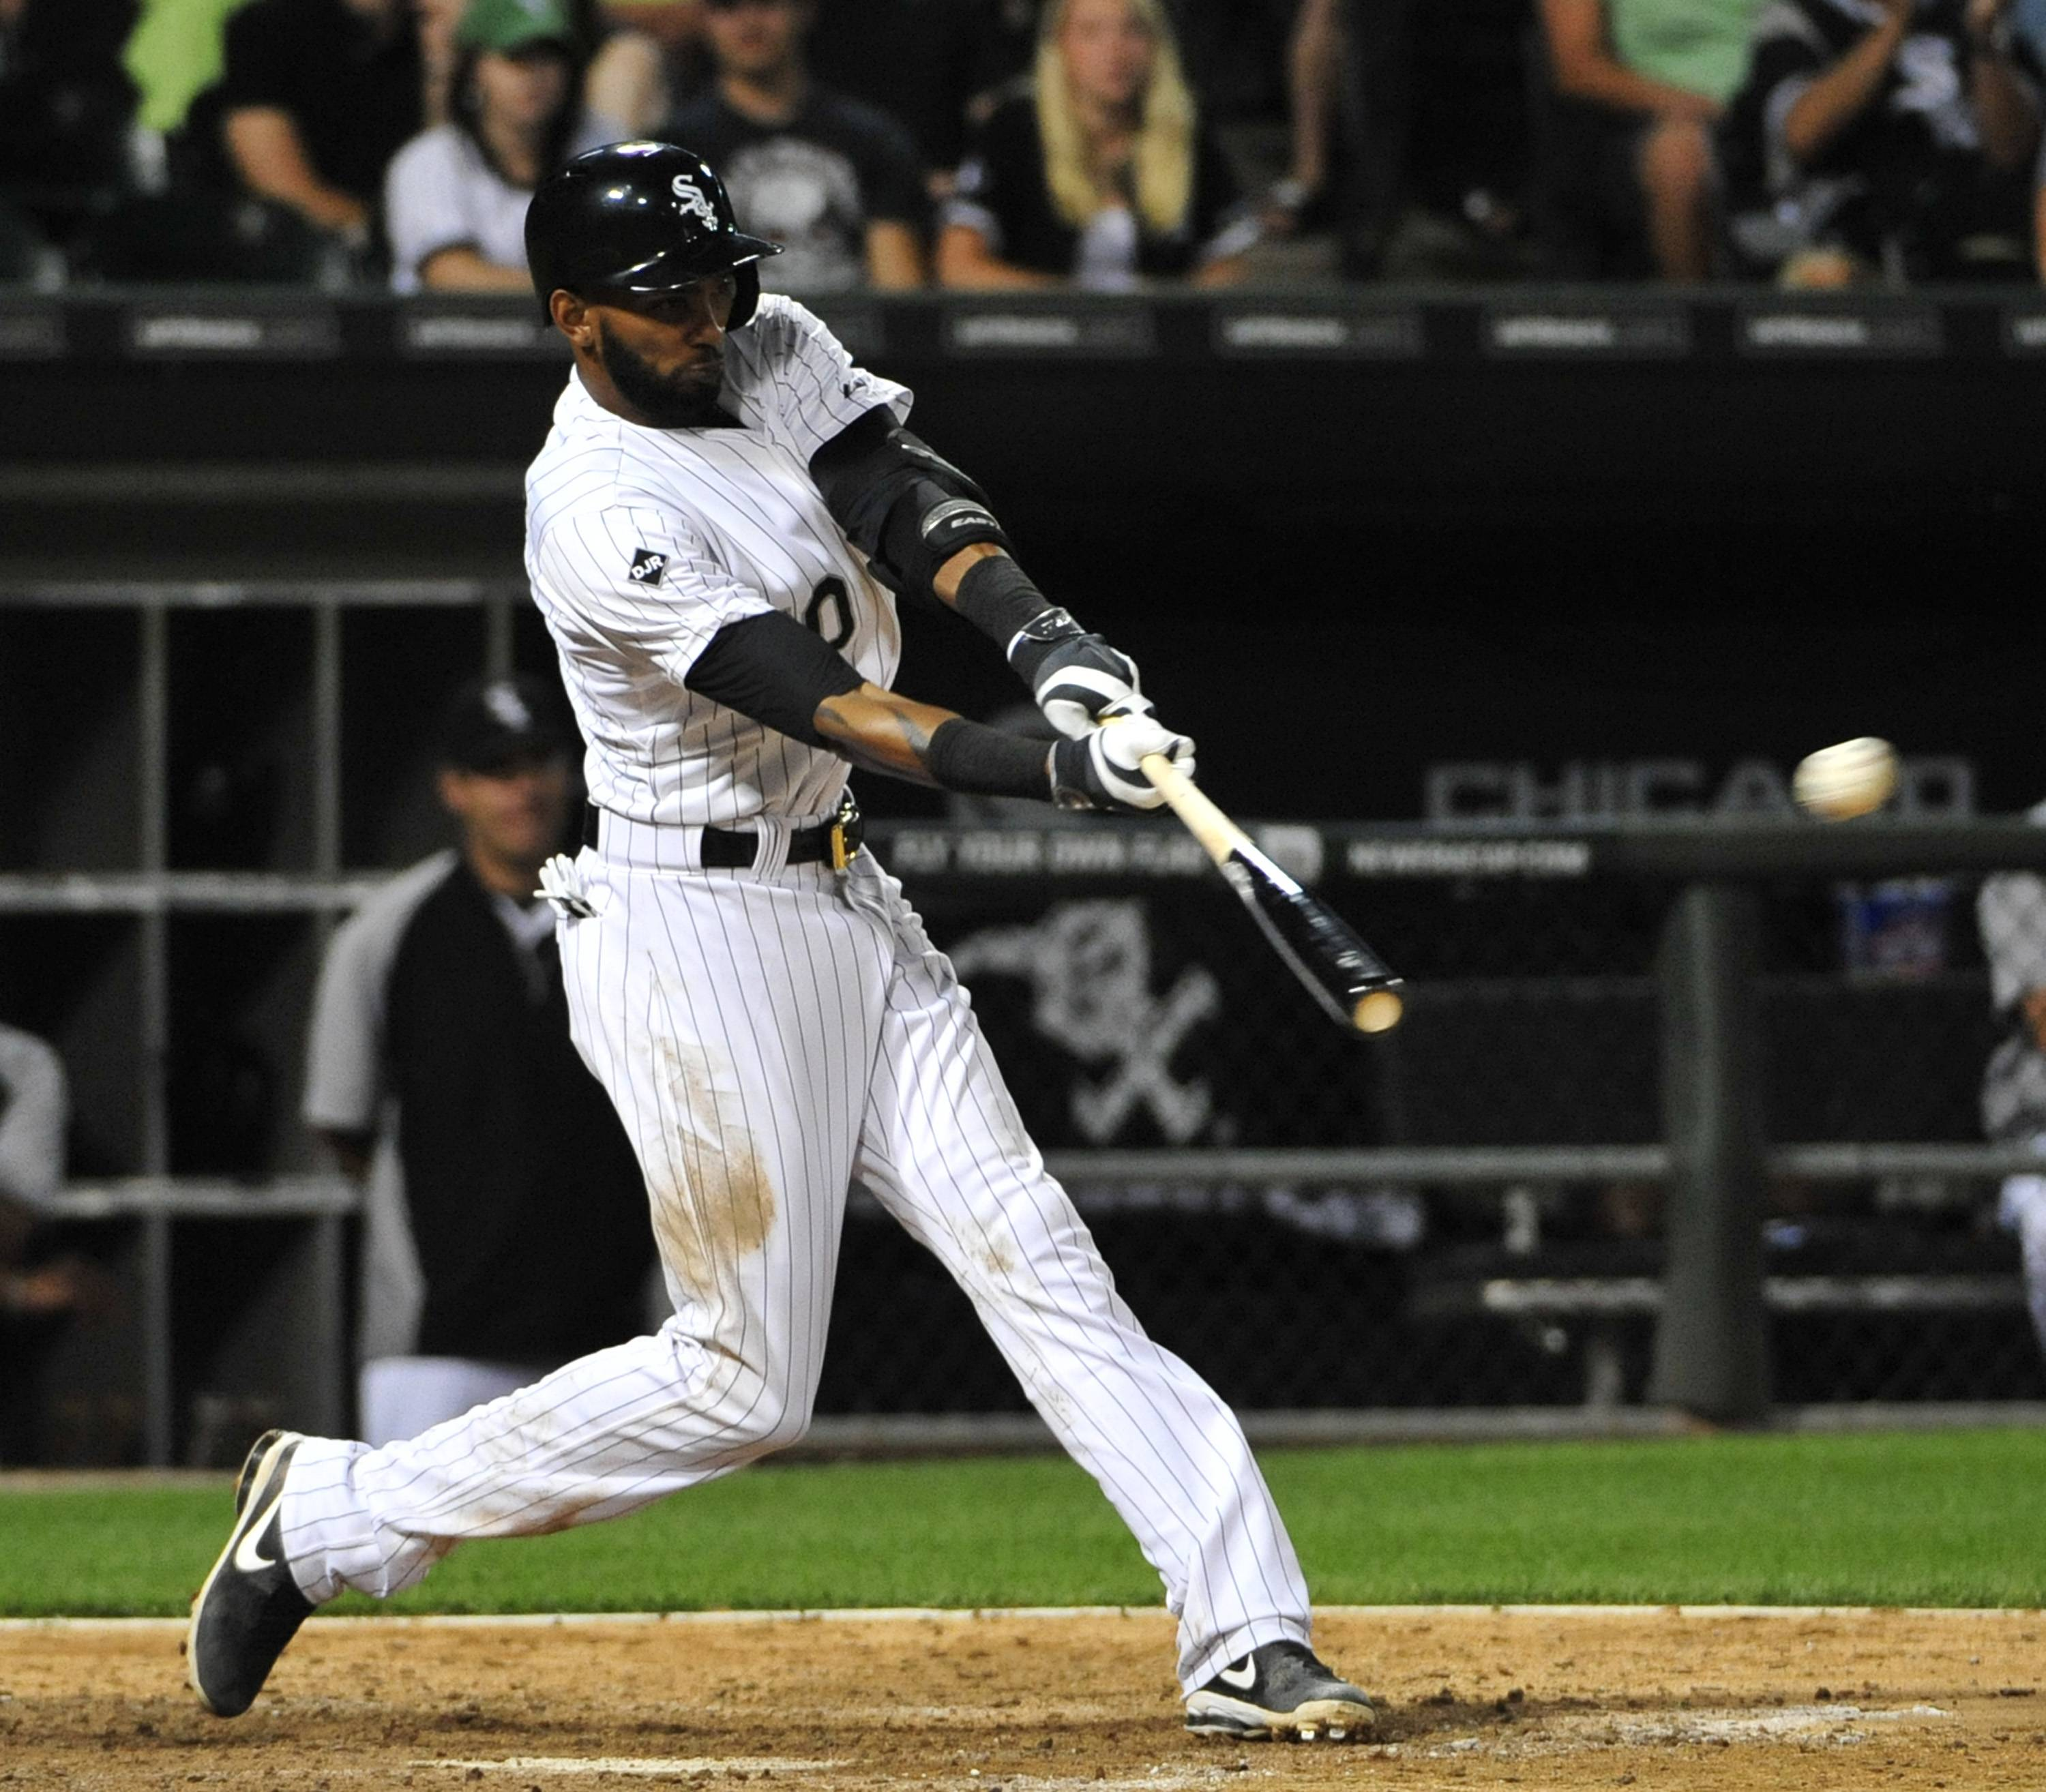 The White Sox's Alexei Ramirez hits an RBI double against the Minnesota Twin during the sixth inning of a baseball game, Friday, Aug. 1, 2014, in Chicago. (AP Photo/David Banks)